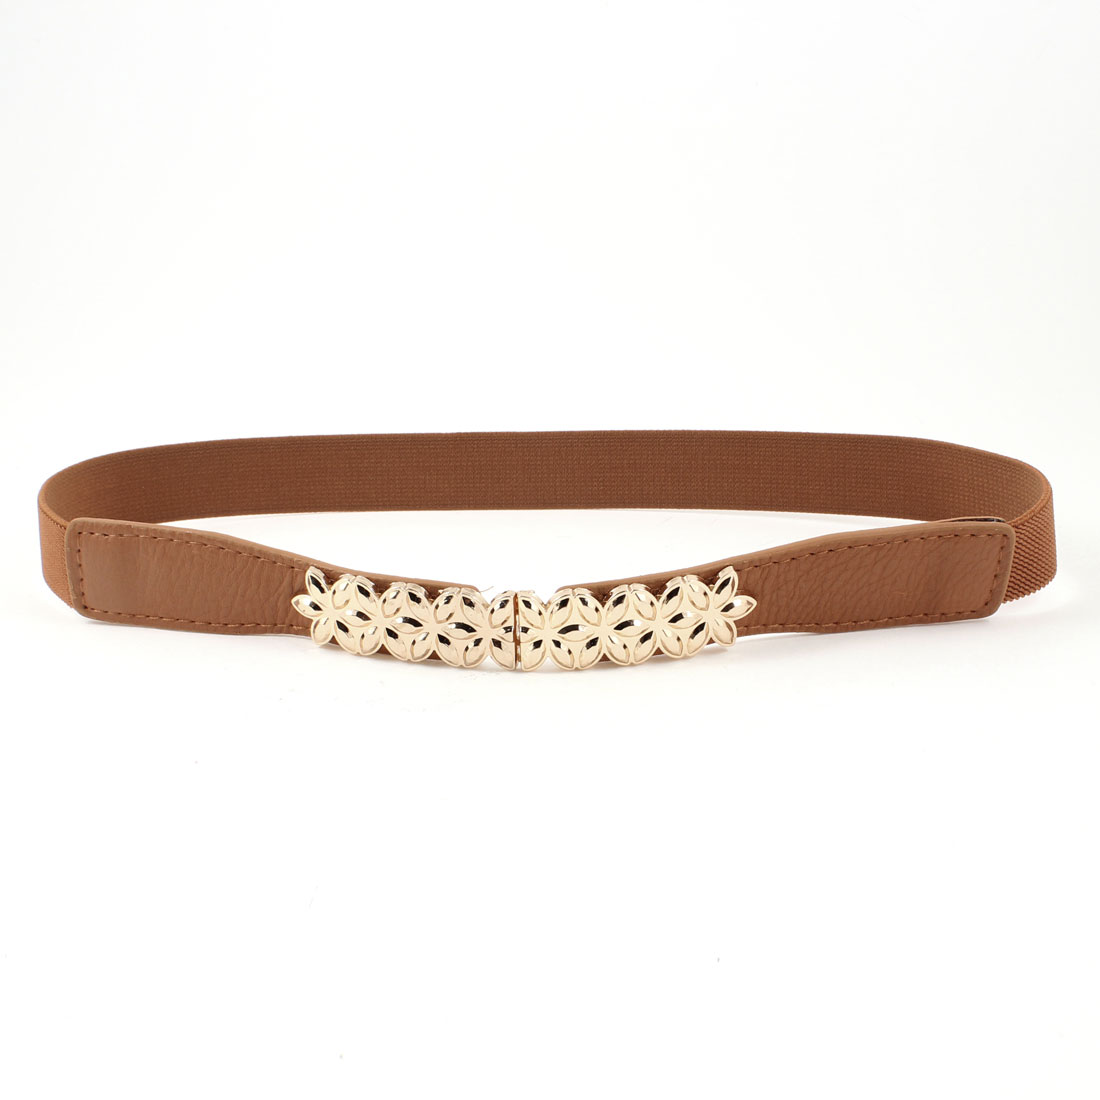 Gold Tone Metal Flower Decor Brown Elastic Skinny Waist Band Belt for Women